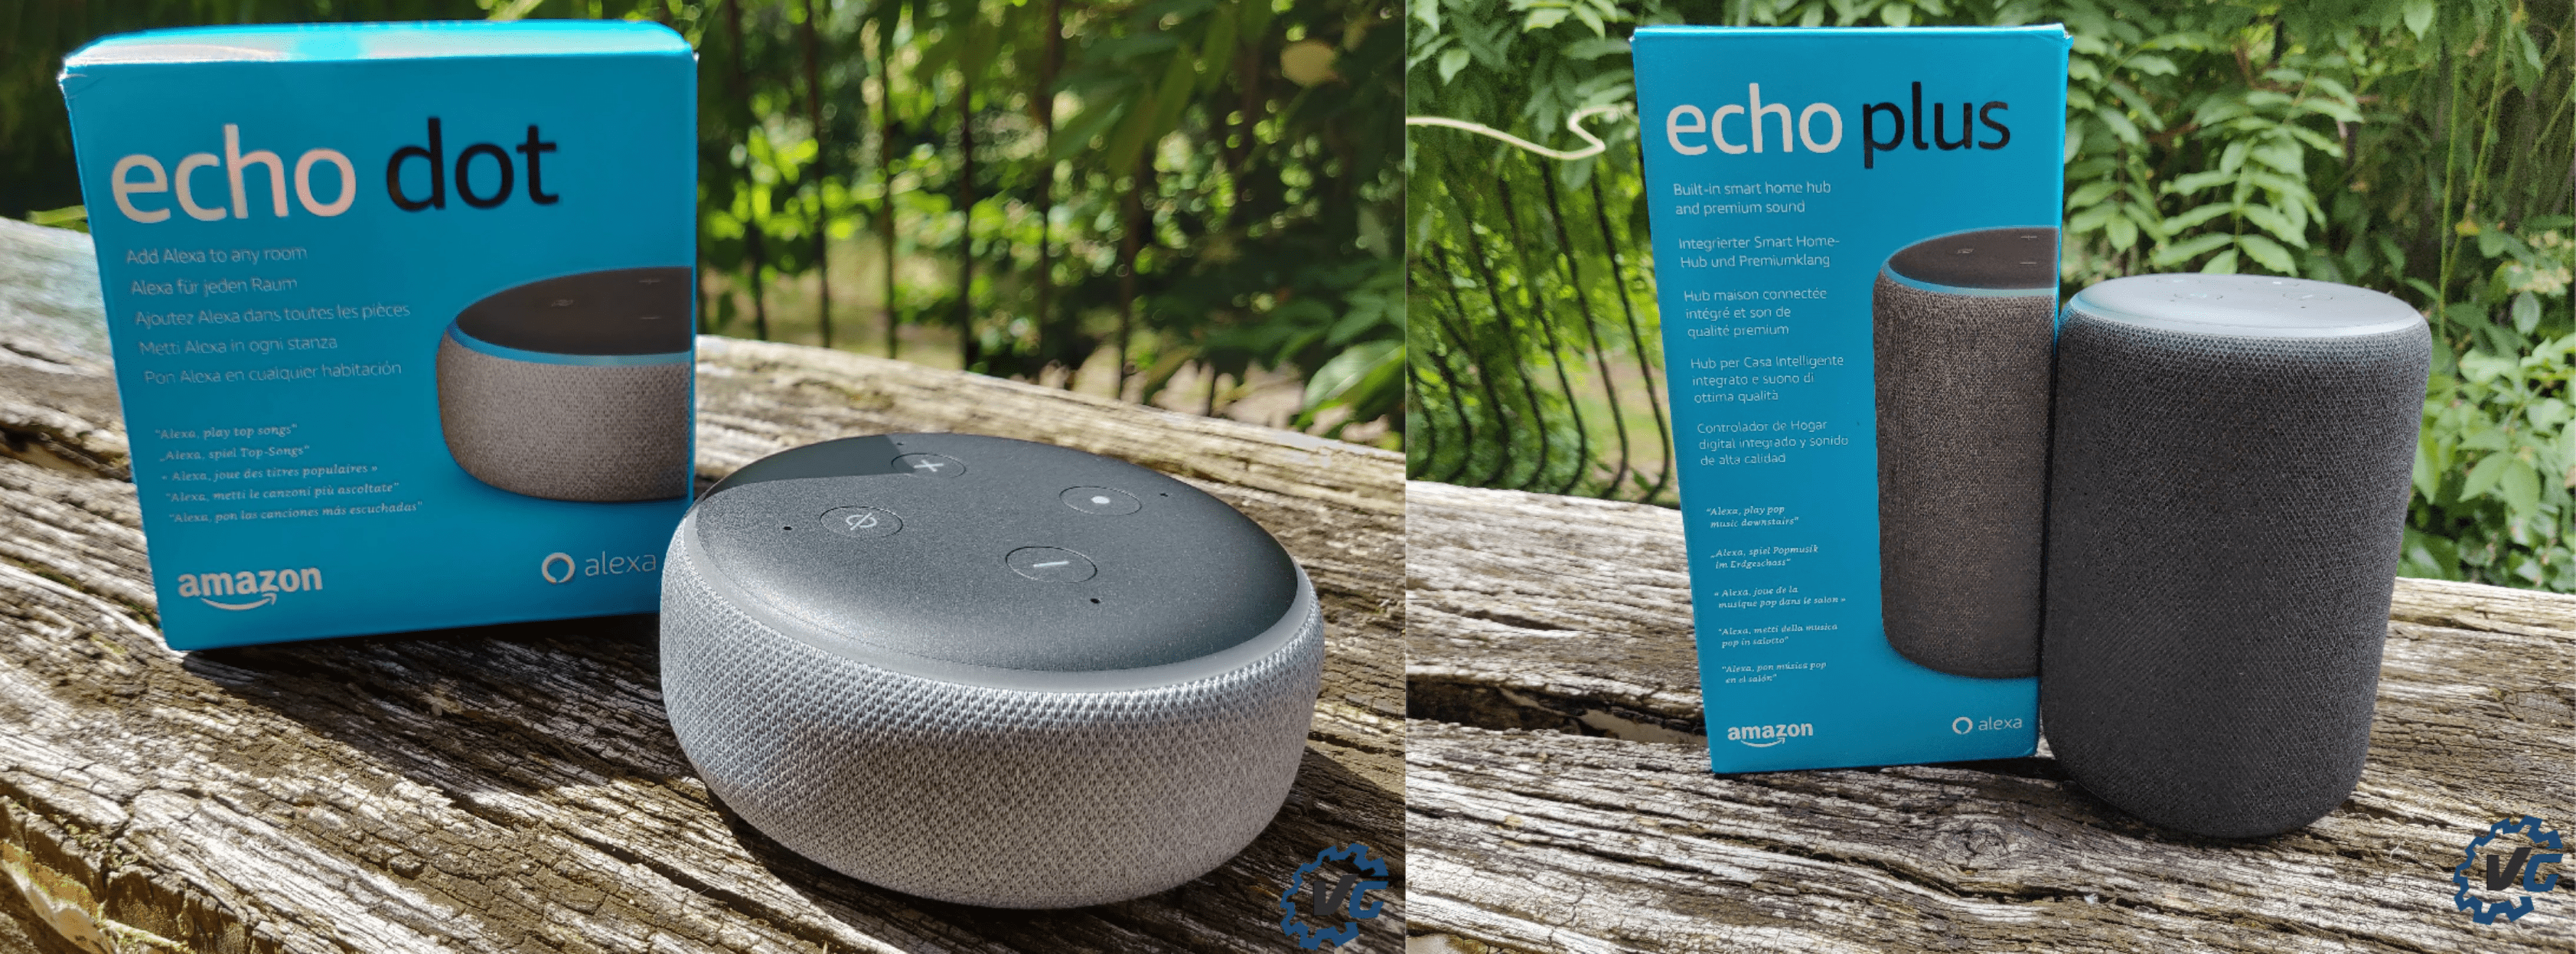 Echo Dot Echo Plus